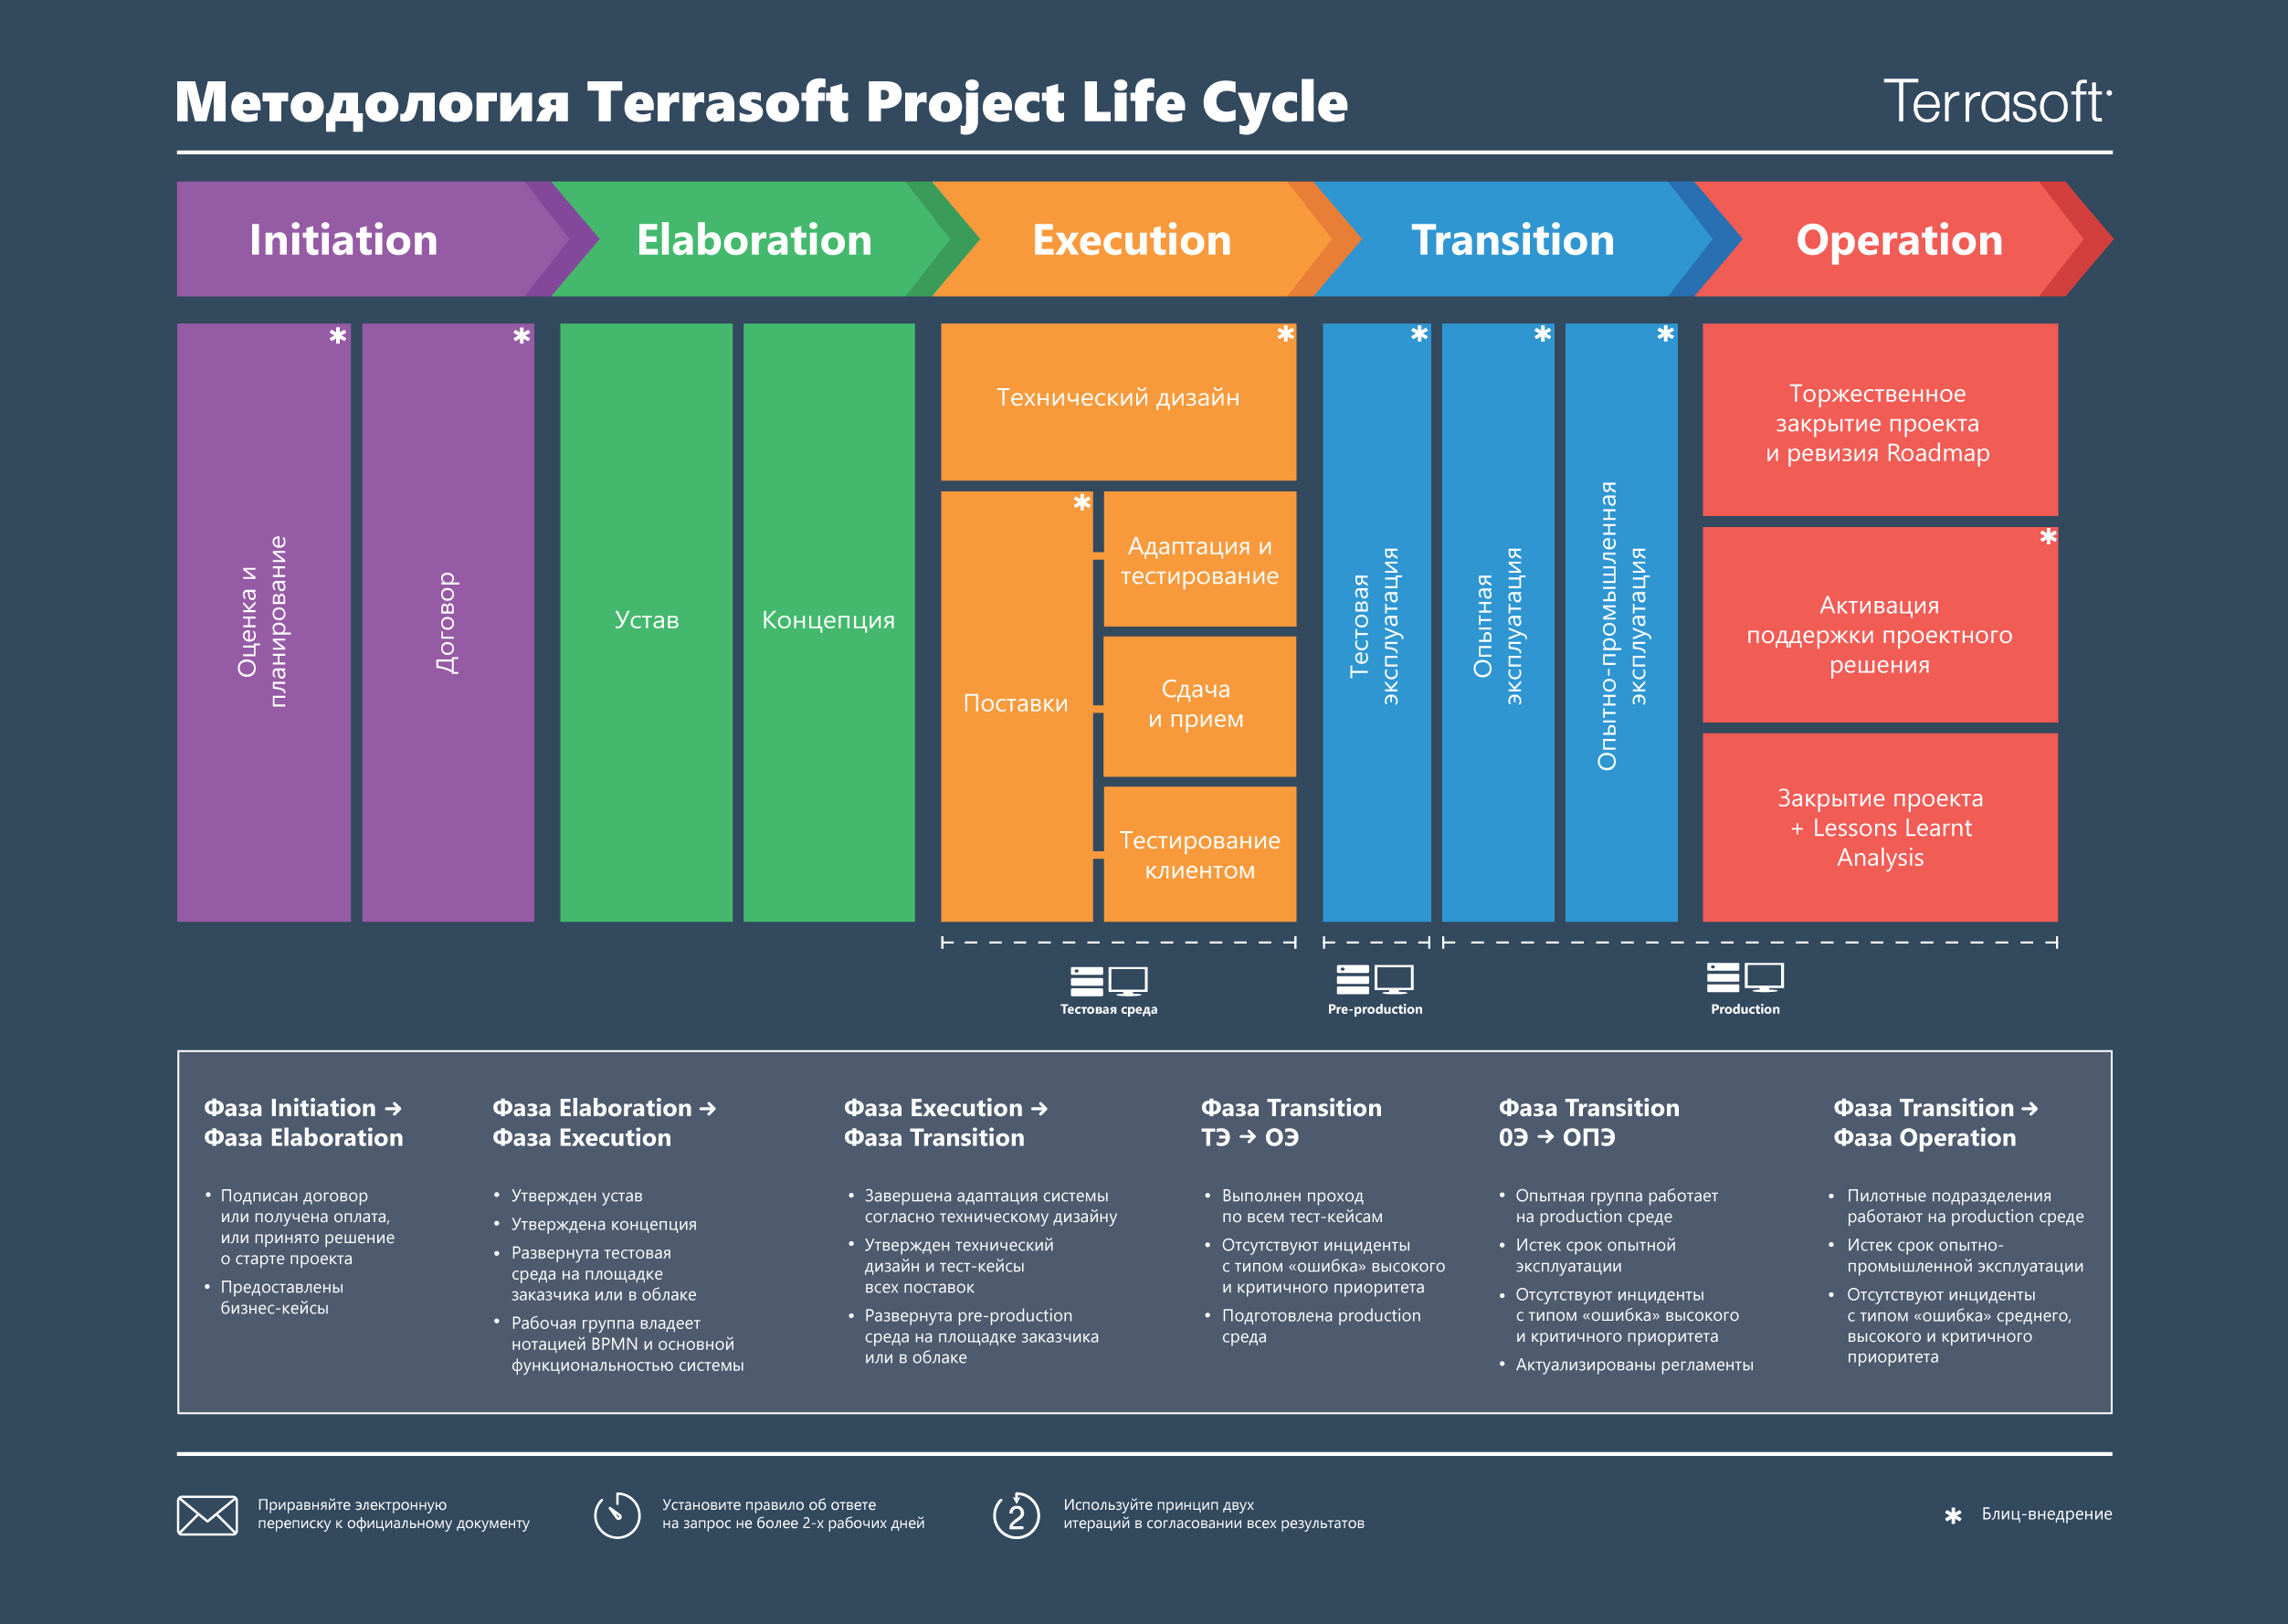 scr_project_life_cycle_poster.png